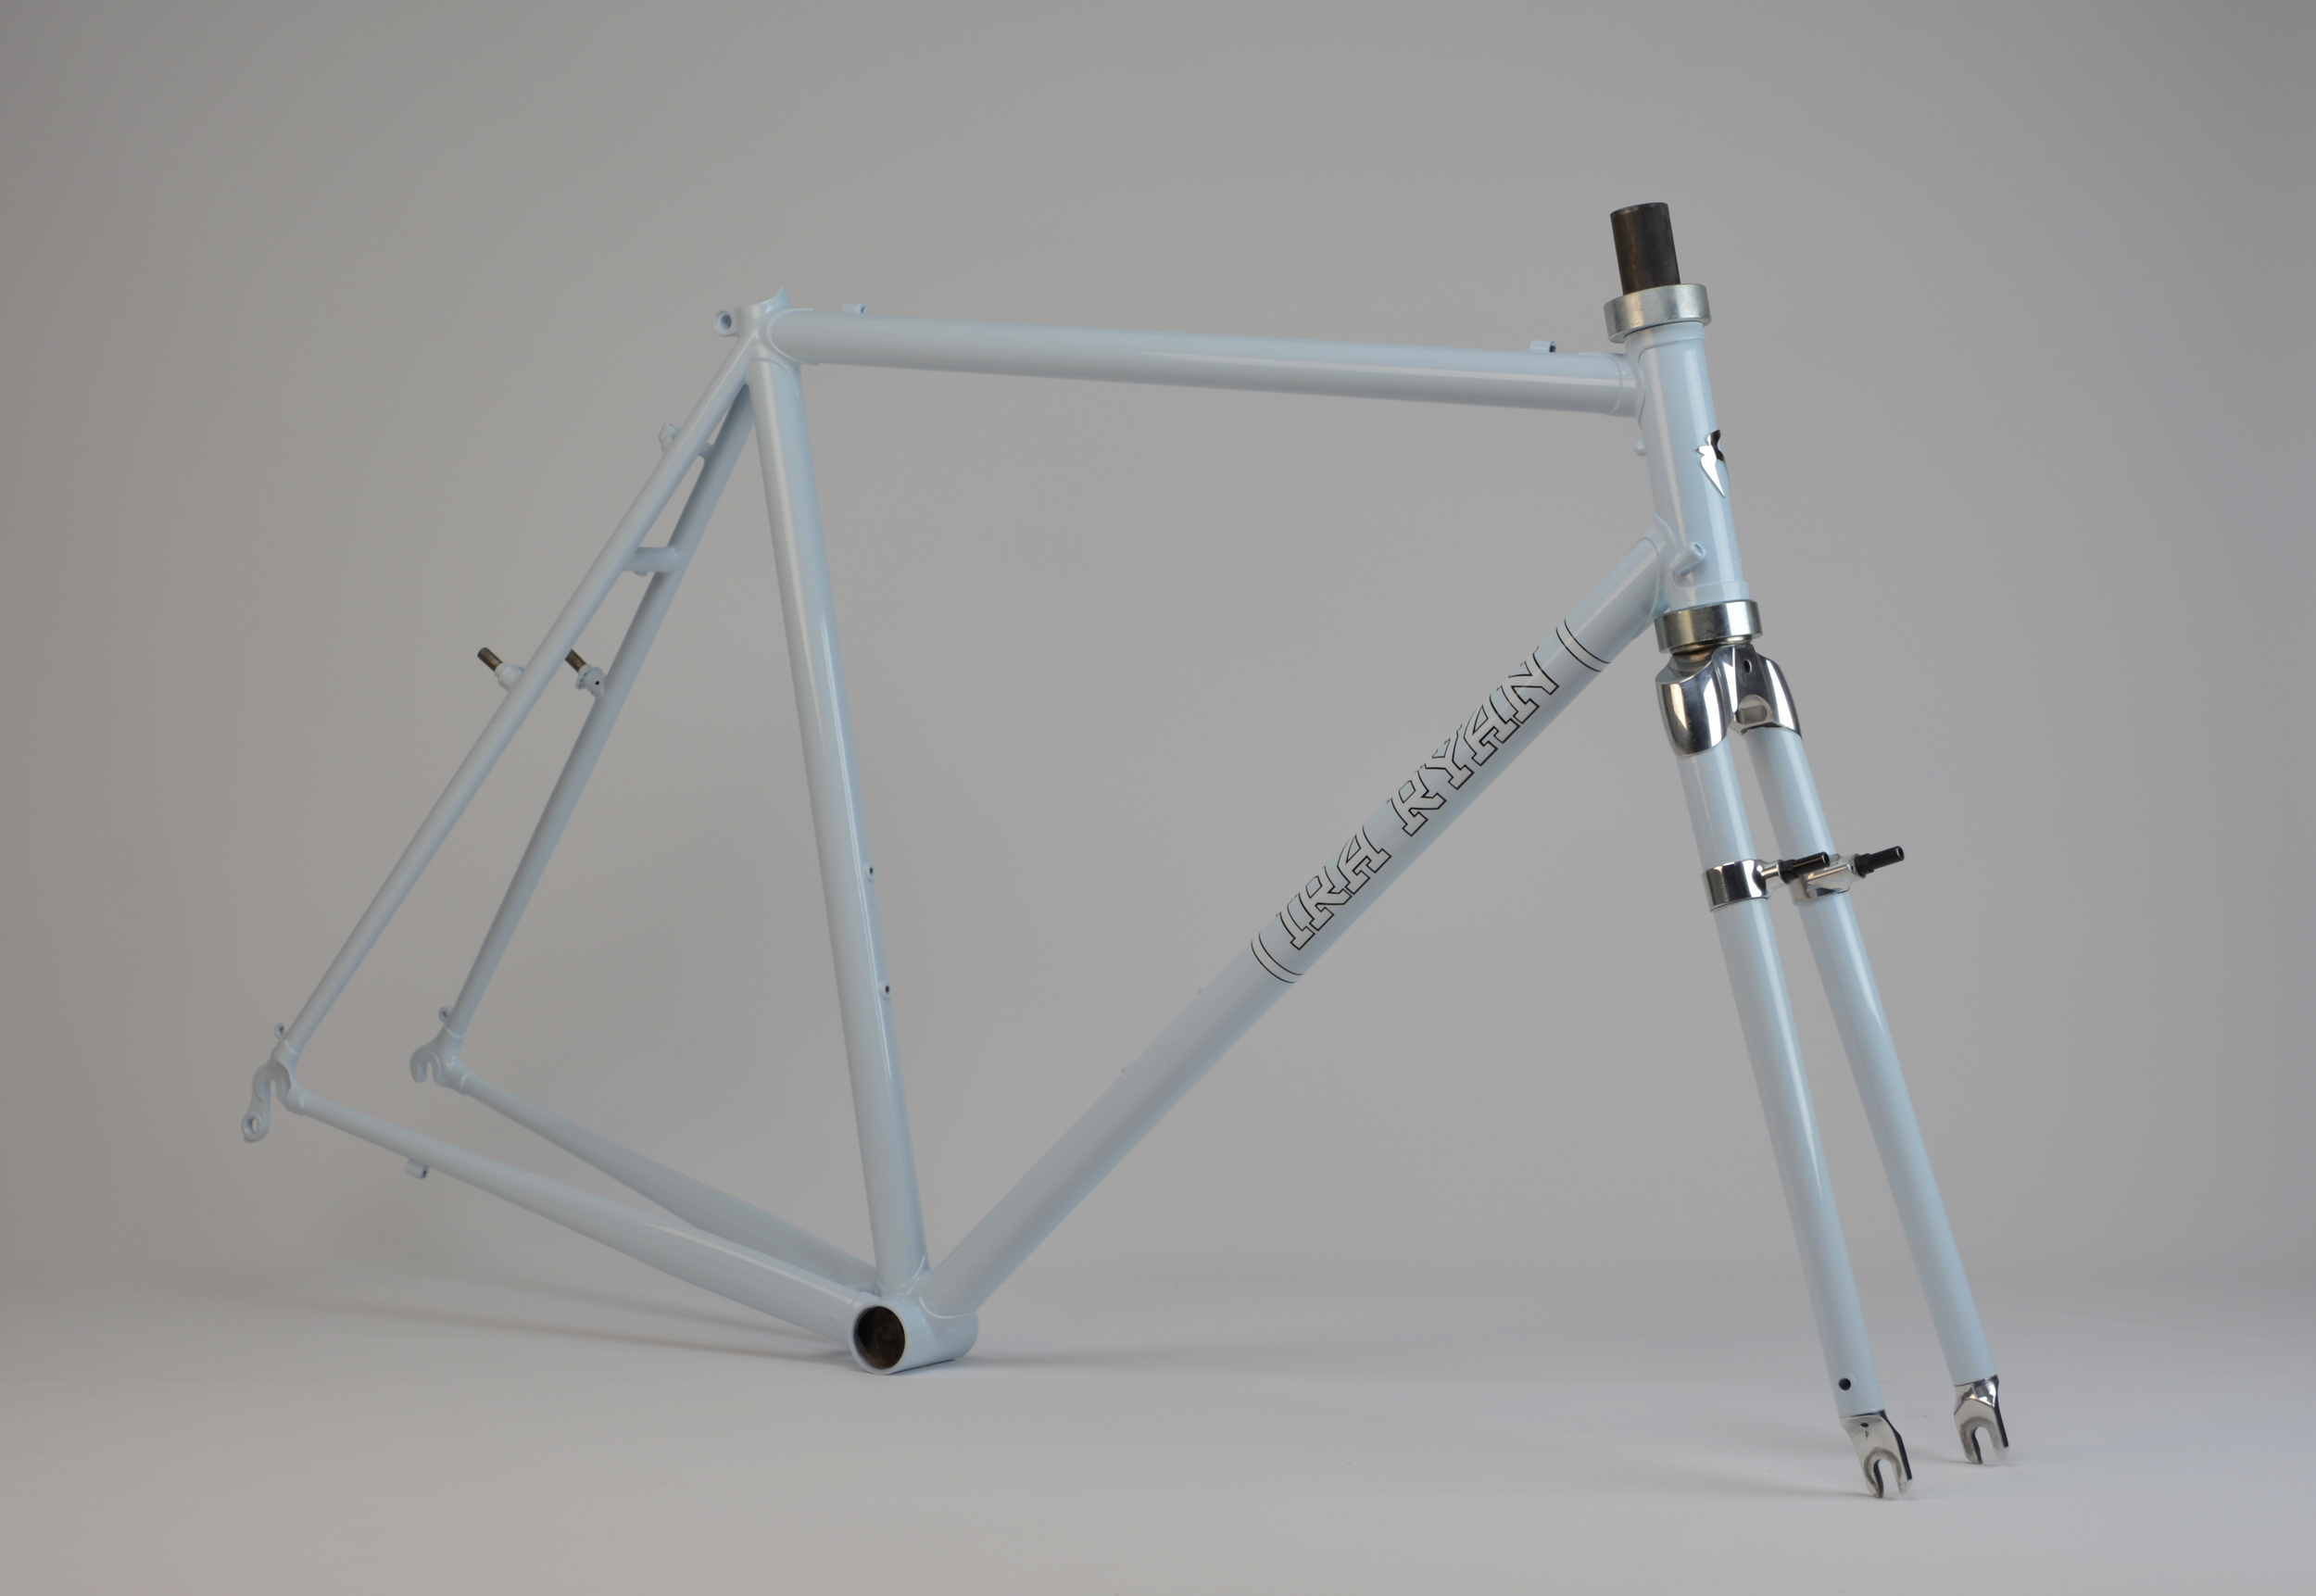 ira-ryan-cyclocross-refinish_25002191436_o.jpg